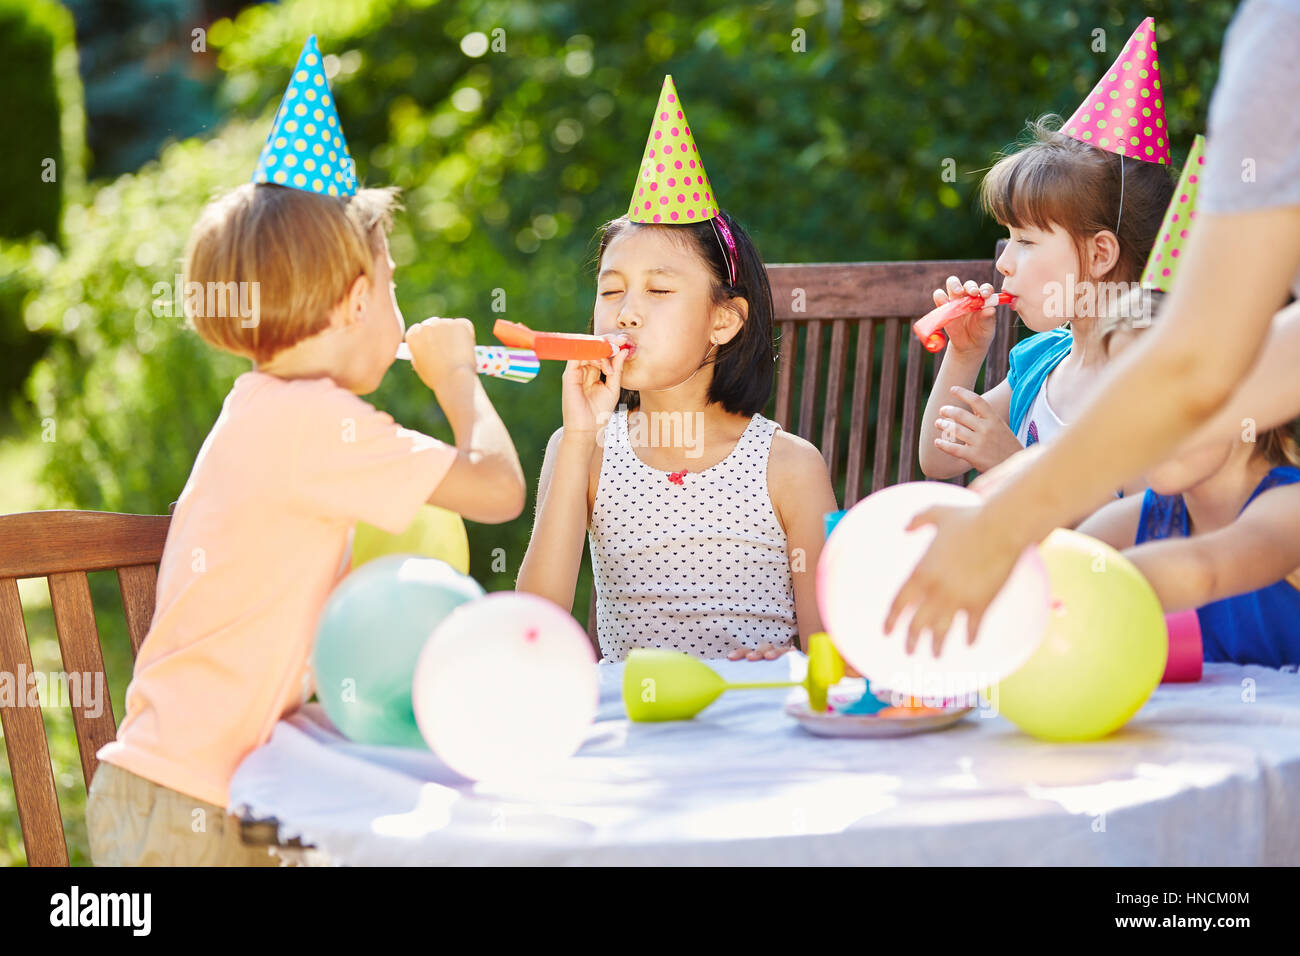 Kids having fun and celebrating with balloons at birthday party in garde - Stock Image